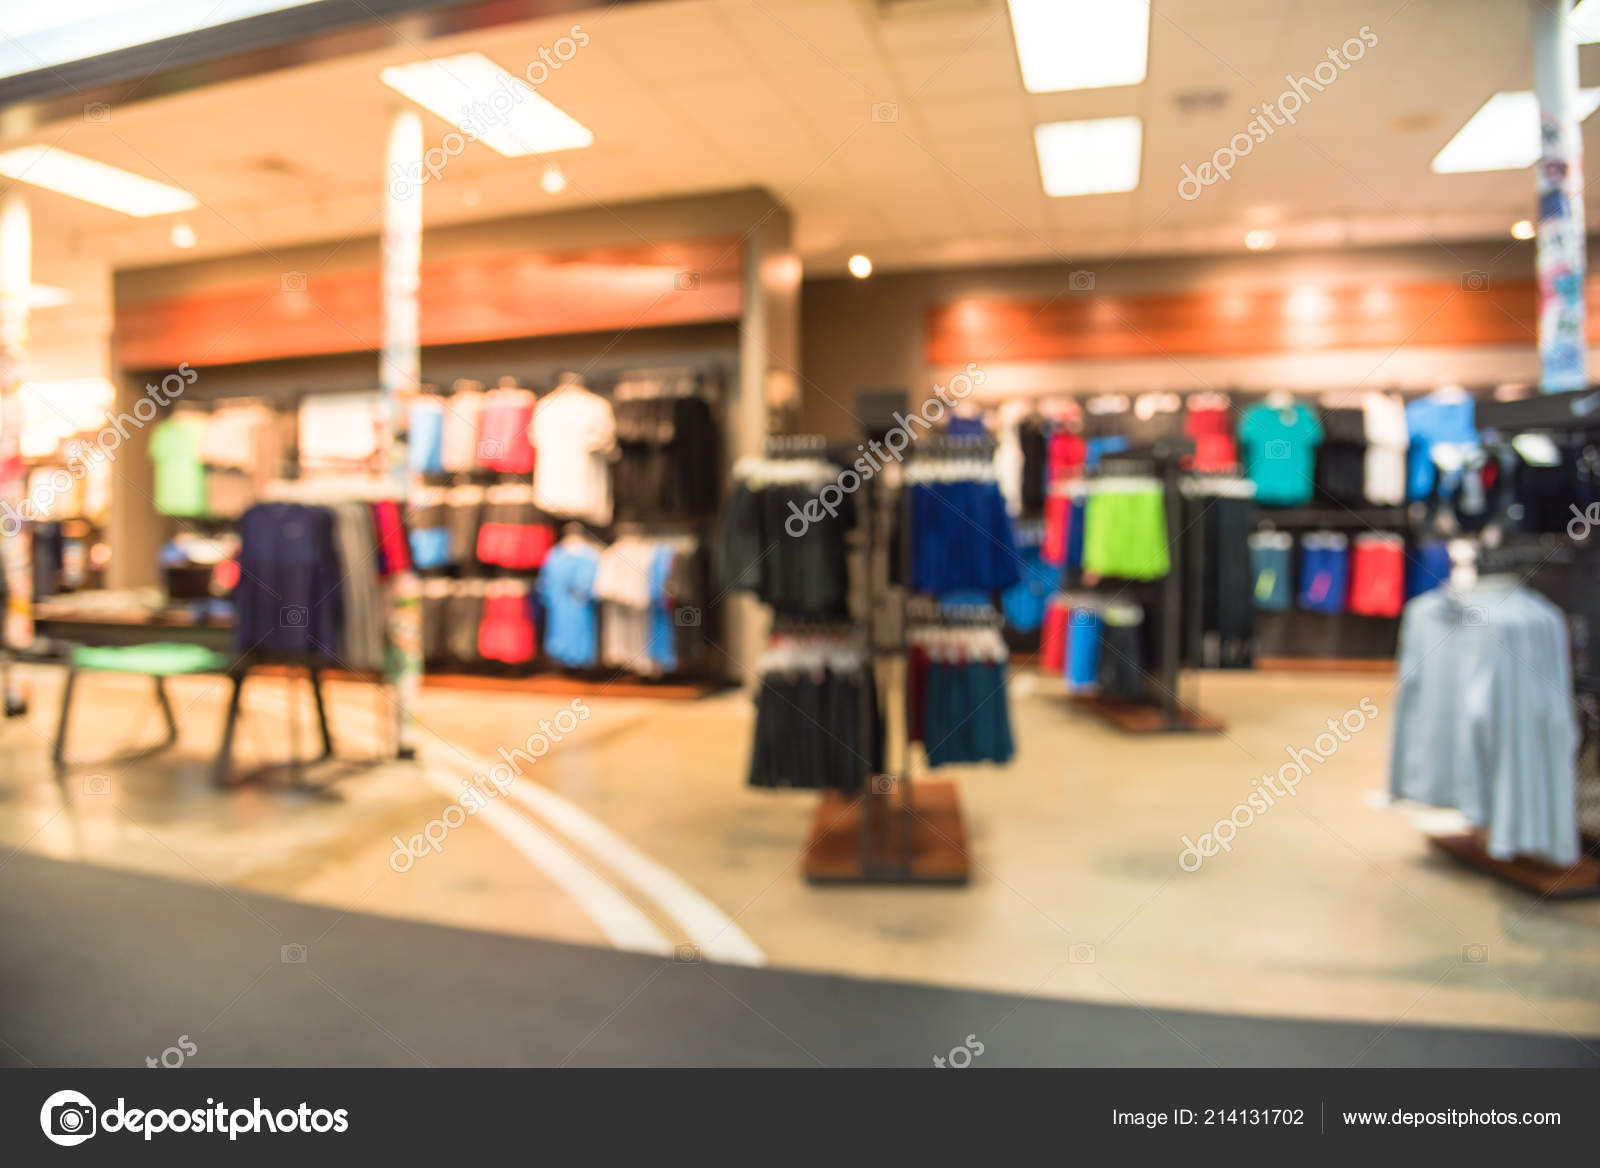 fbc39cb3da01d Blurred image interior of sports and fitness clothing store in America. Sport  shop with famous sports fashion brand worldwide of athletic shoes, ...